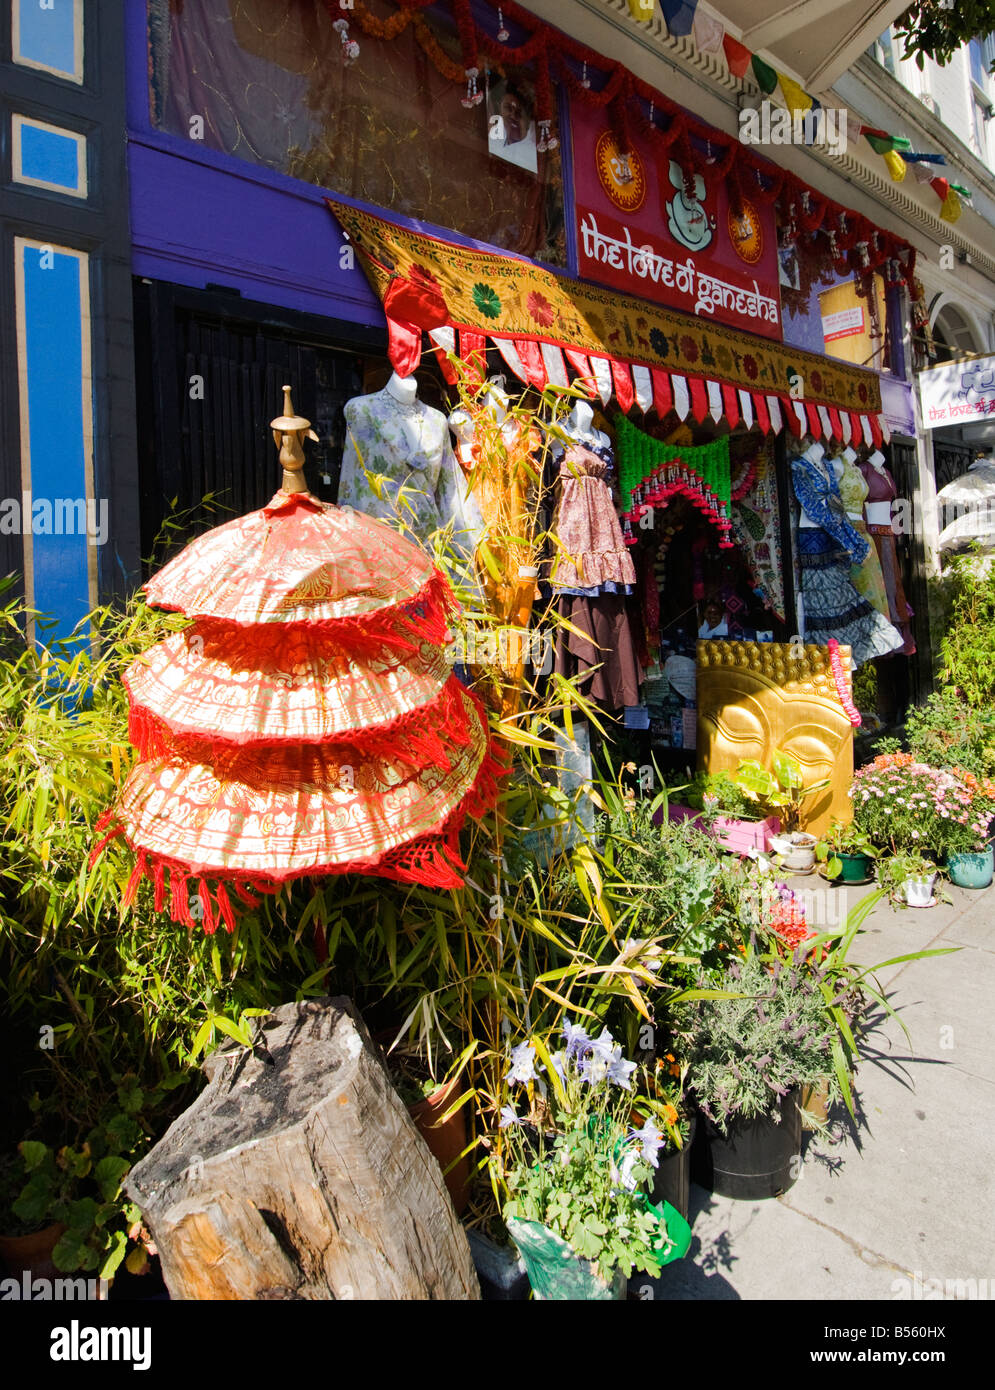 California San Francisco Eastern mysticism shops in the Haight Ashbury Photo 28 casanf79286 Photo Lee Foster 2008 - Stock Image